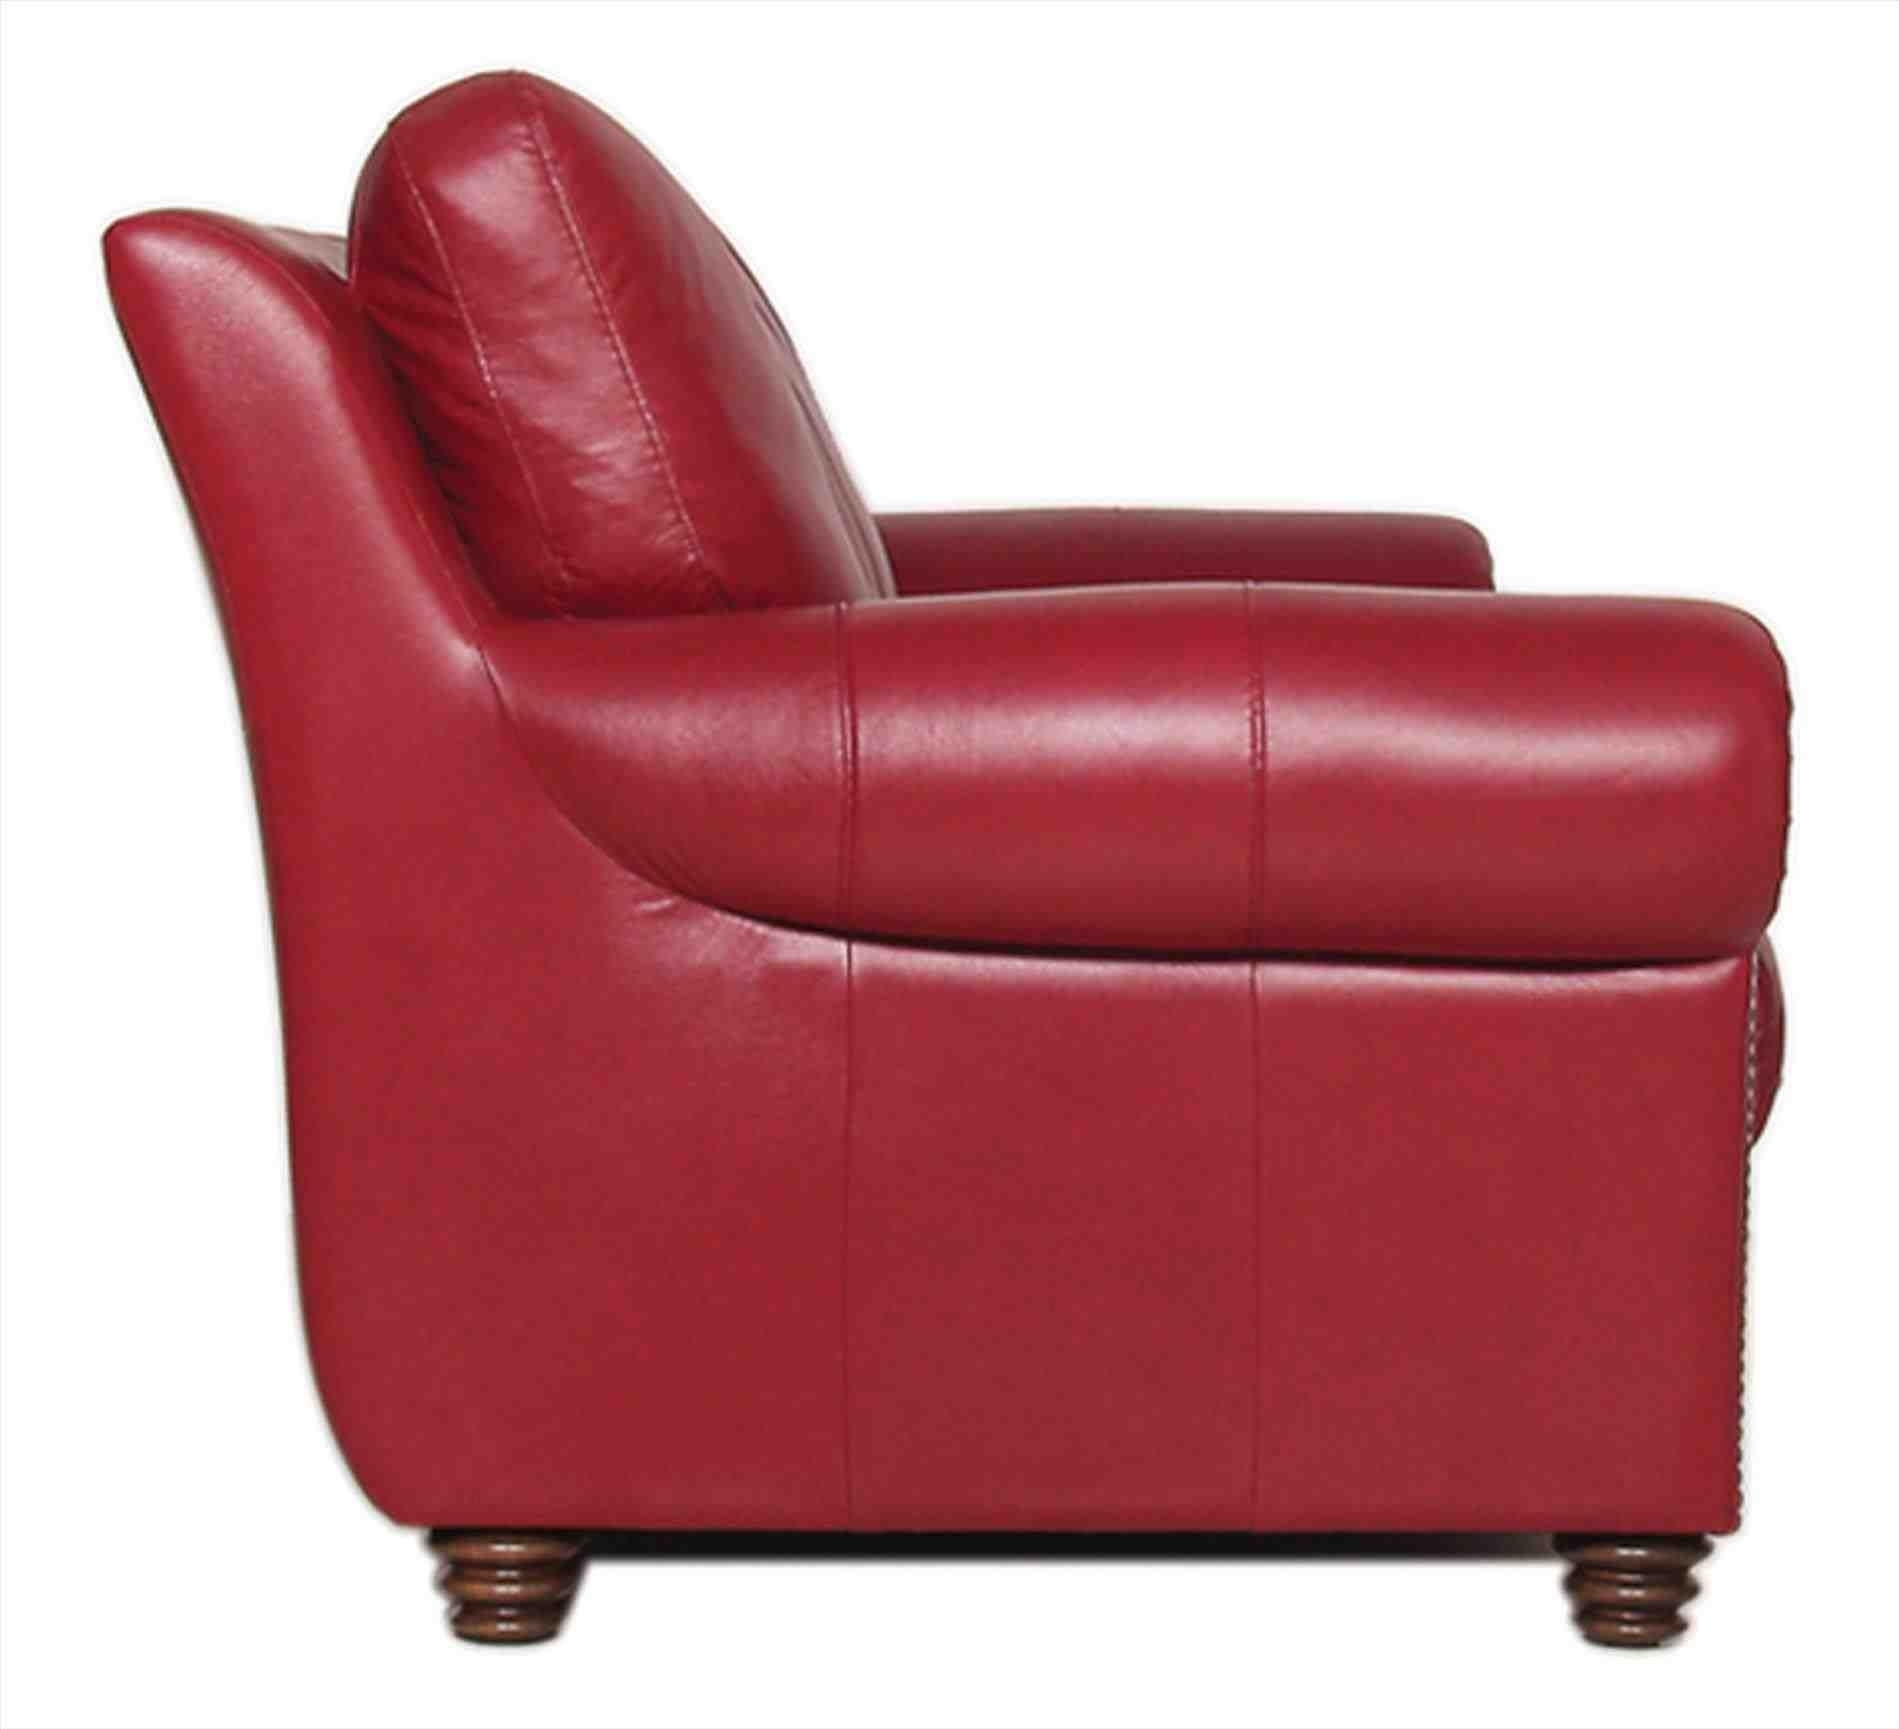 Pinchairs Online On Chairs Online | Pinterest | Chair, Sofa regarding Clyde Saddle 3 Piece Power Reclining Sectionals With Power Headrest & Usb (Image 28 of 30)